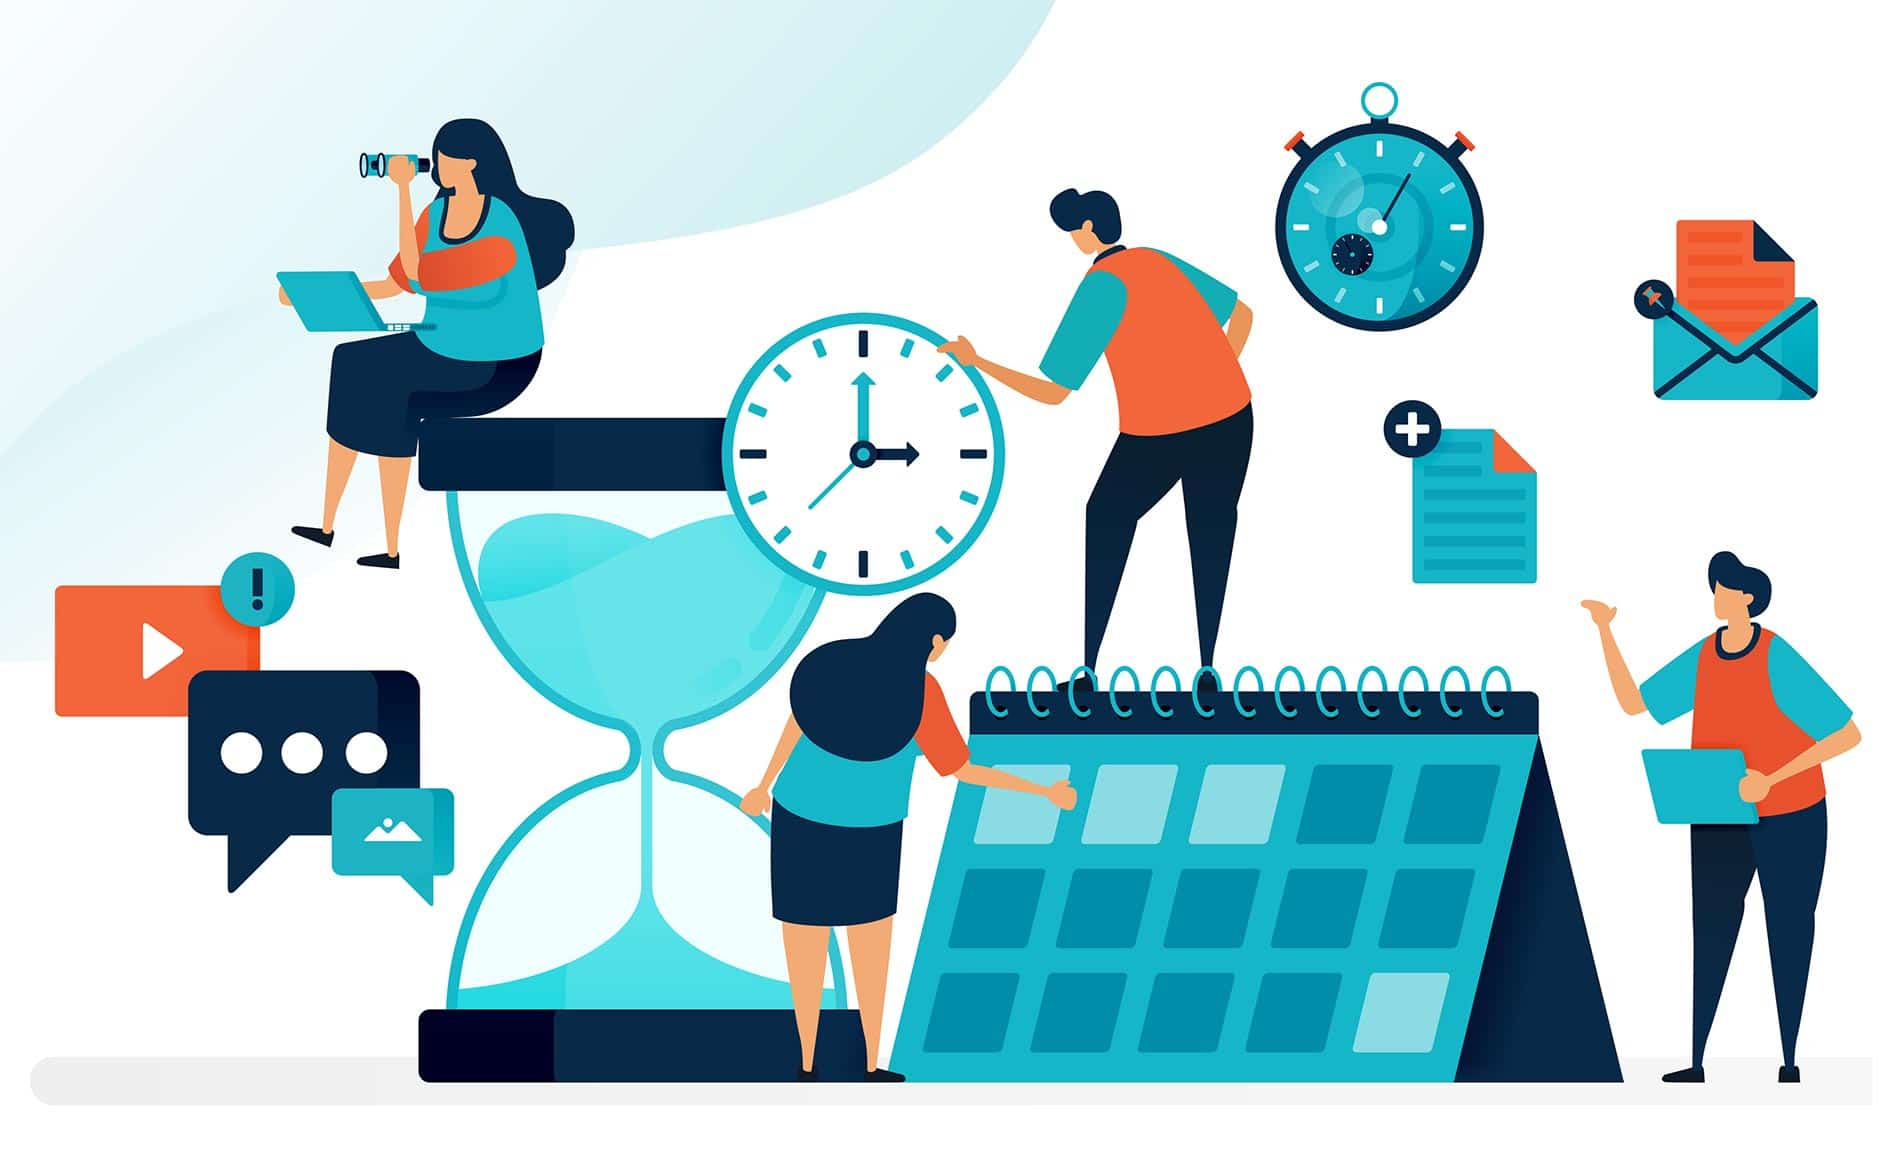 Timer, clock and calendar for productivity management